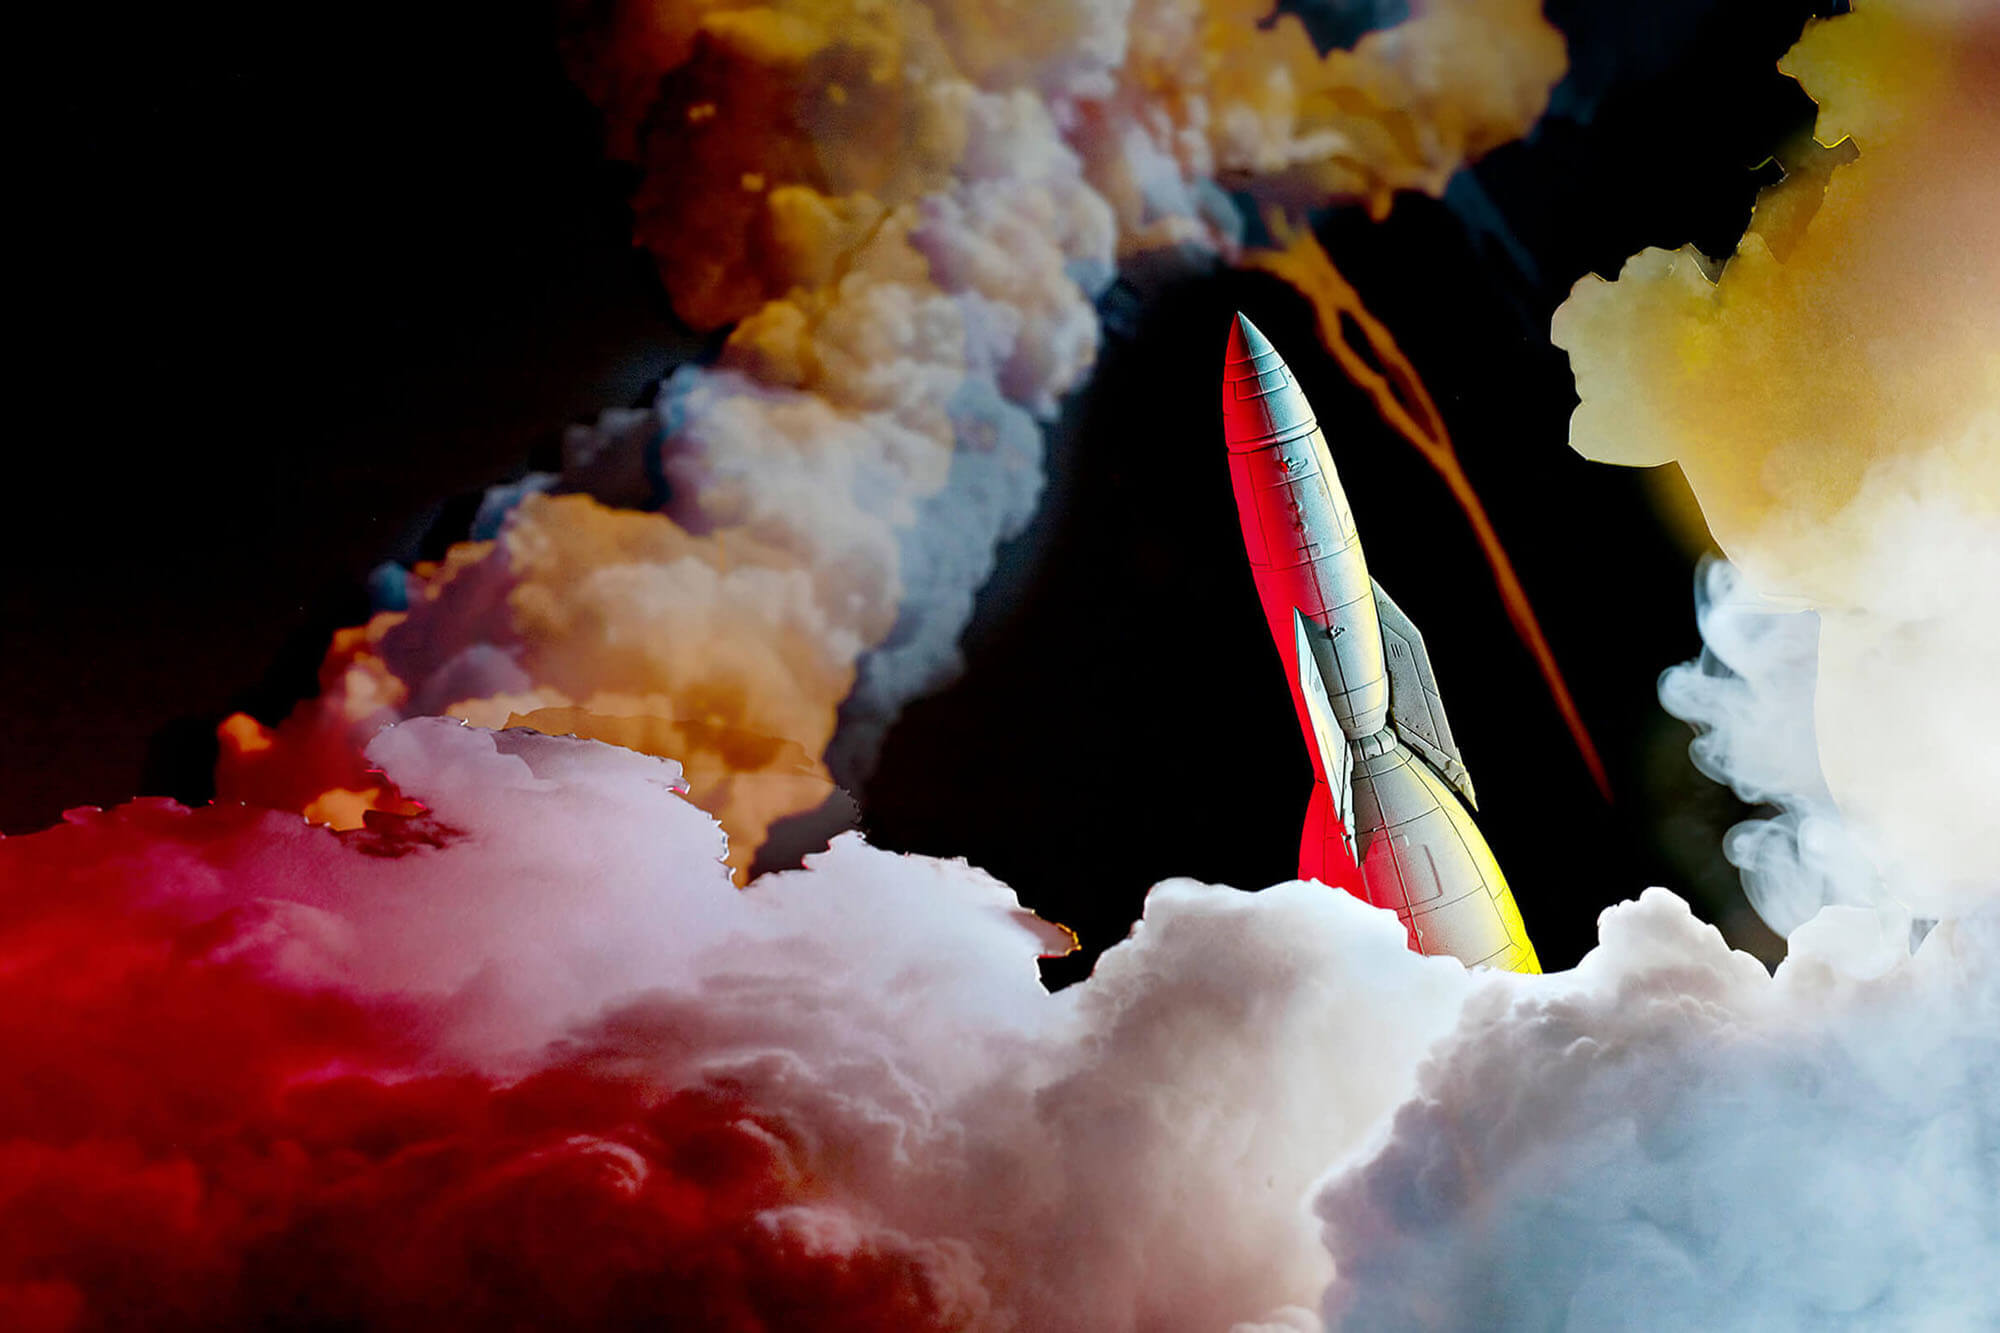 Sadie Wechsler's Takeoff of a rocket heading through the clouds